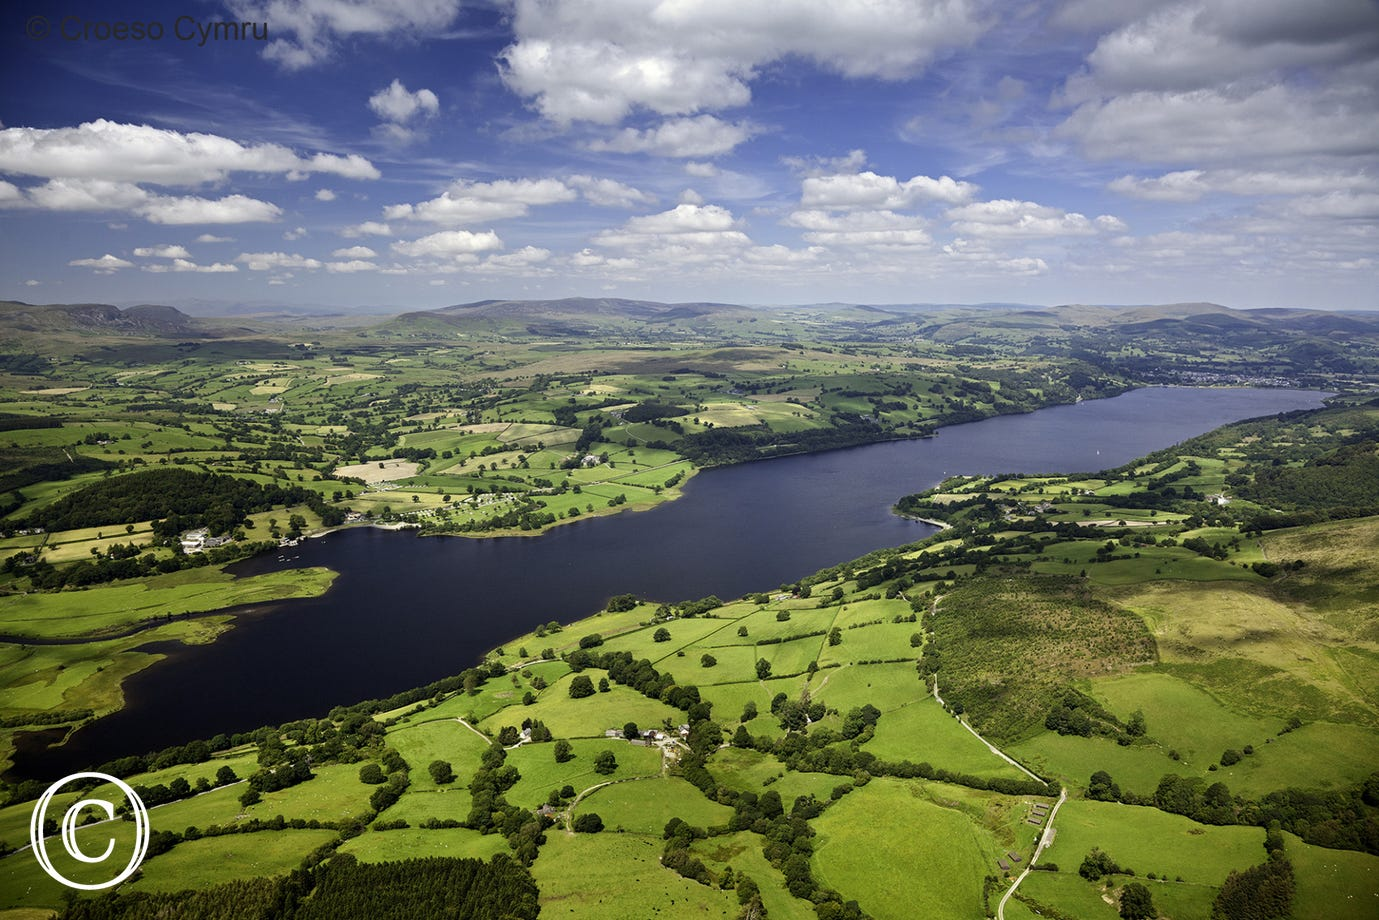 Aerial view of Bala Lake (Llyn Tegid)